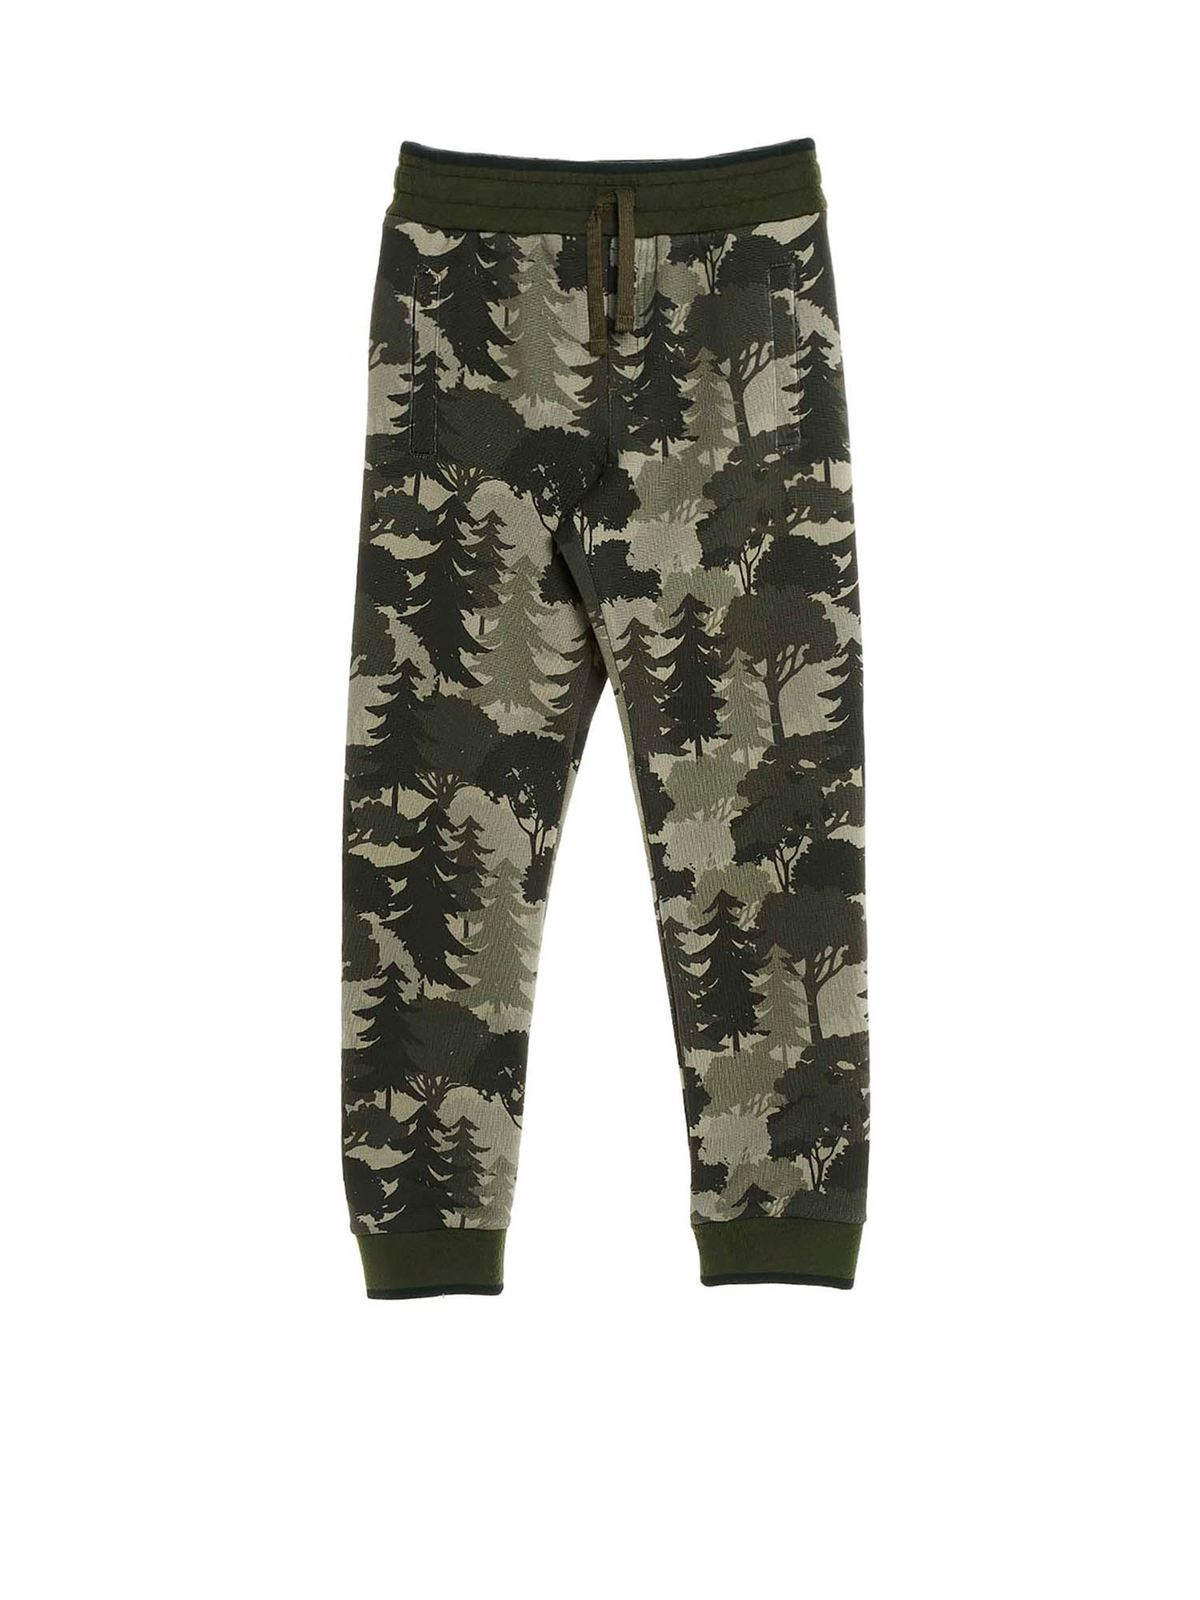 DOLCE & GABBANA JR FOREST PRINT JOGGING PANTS IN GREEN